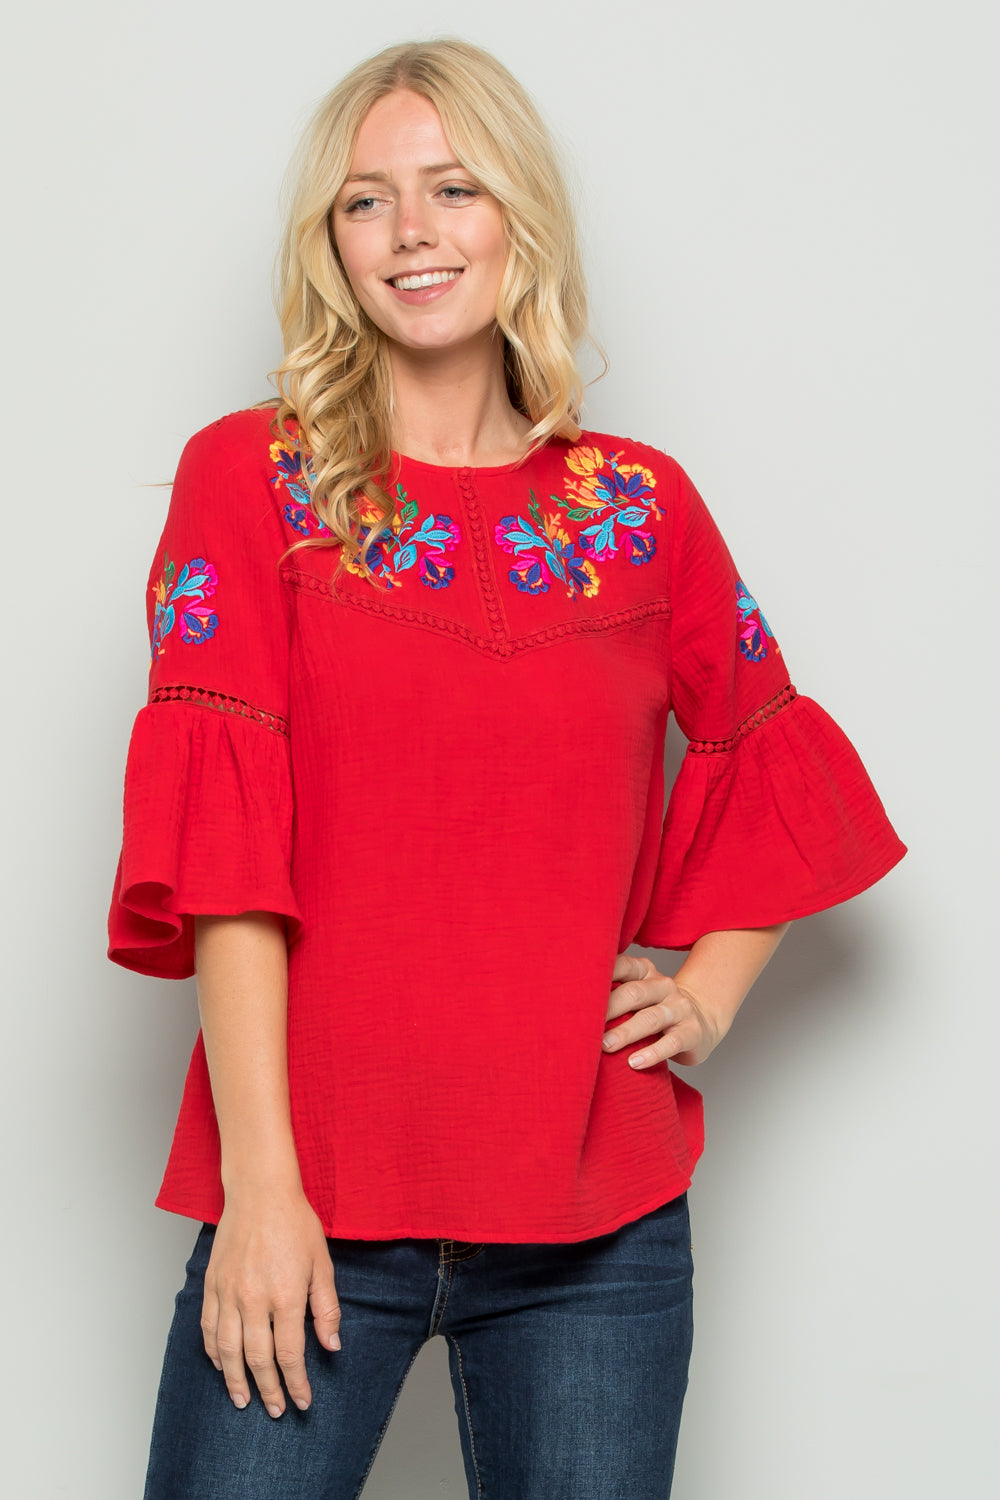 T2727 Floral Embroidered Top - YELLOW